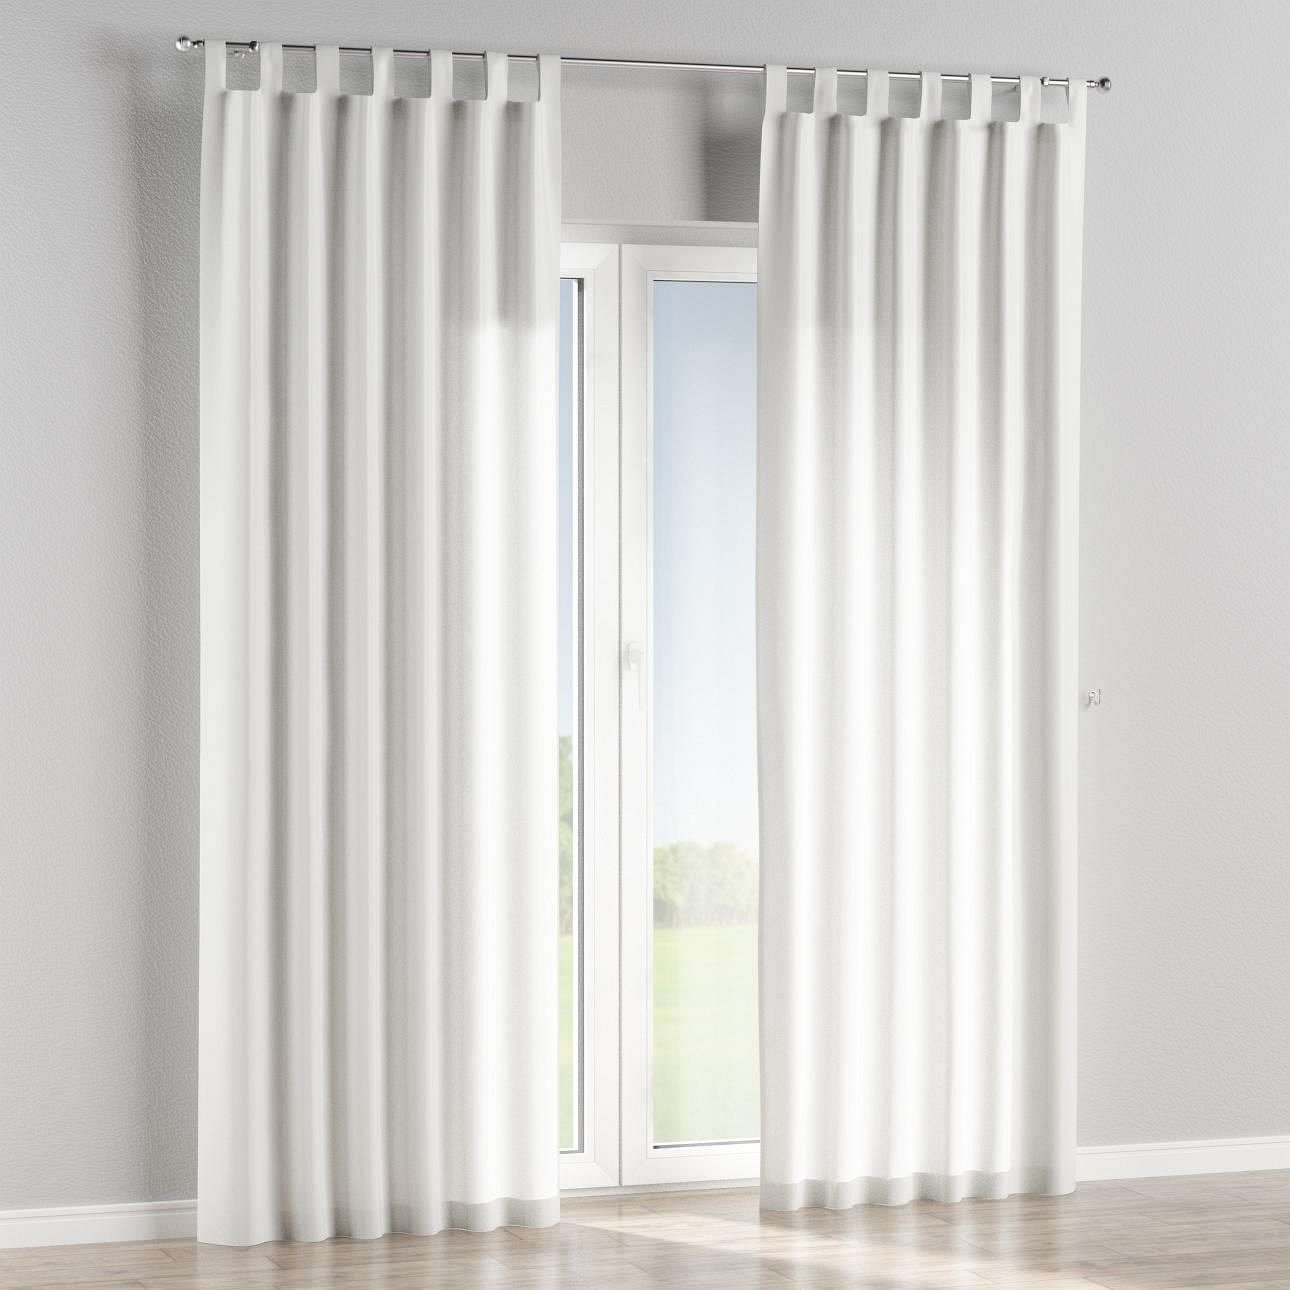 Tab top curtains in collection Fleur , fabric: 139-52